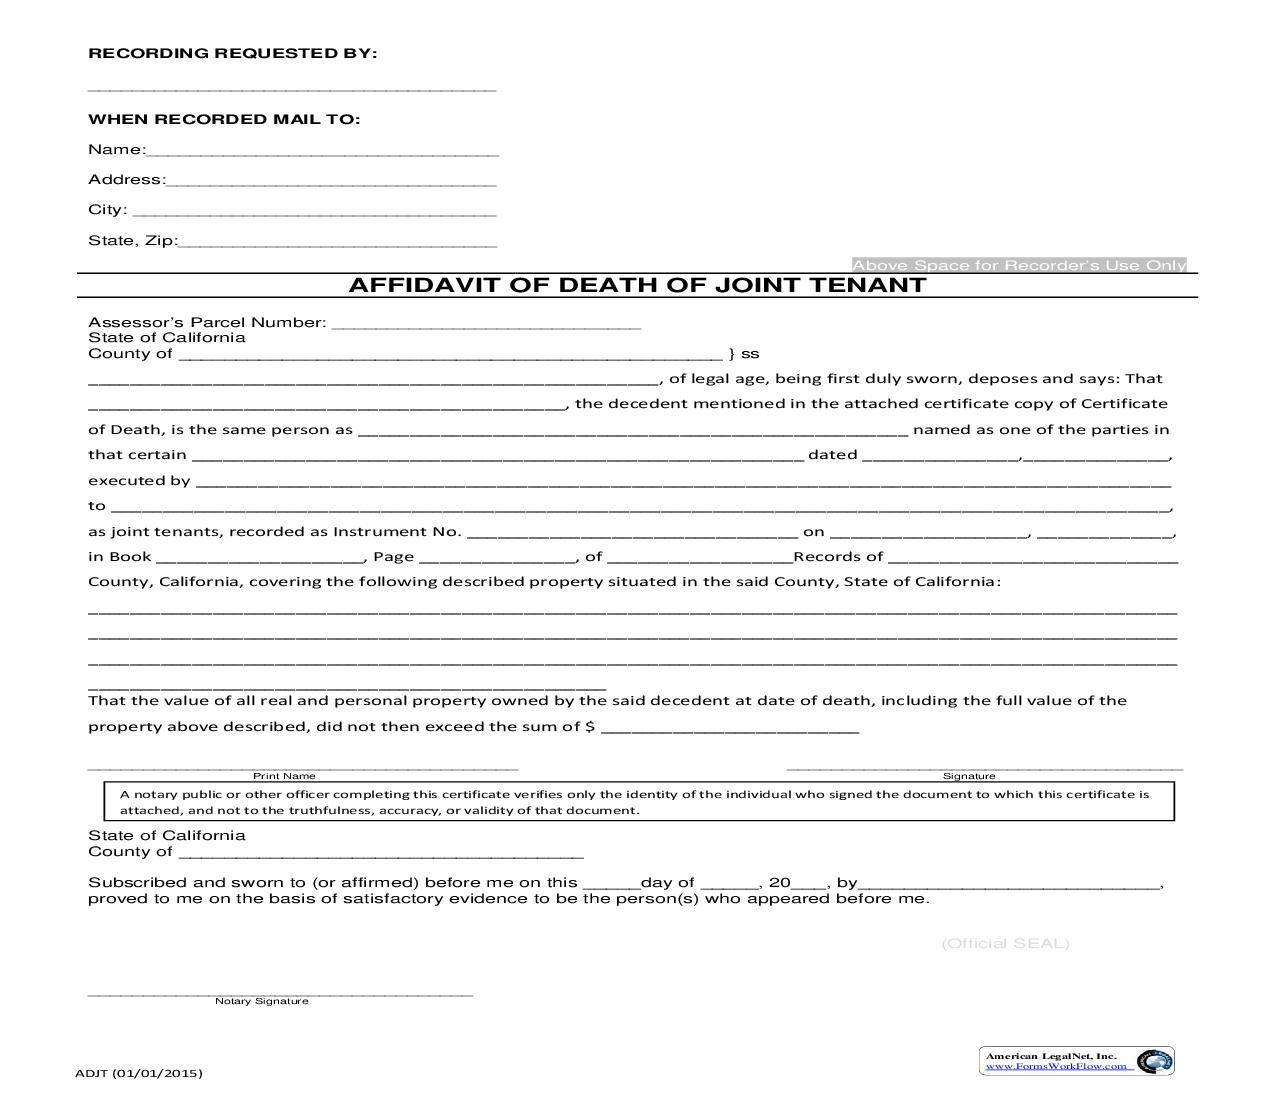 This is a California form that can be used for Assessor